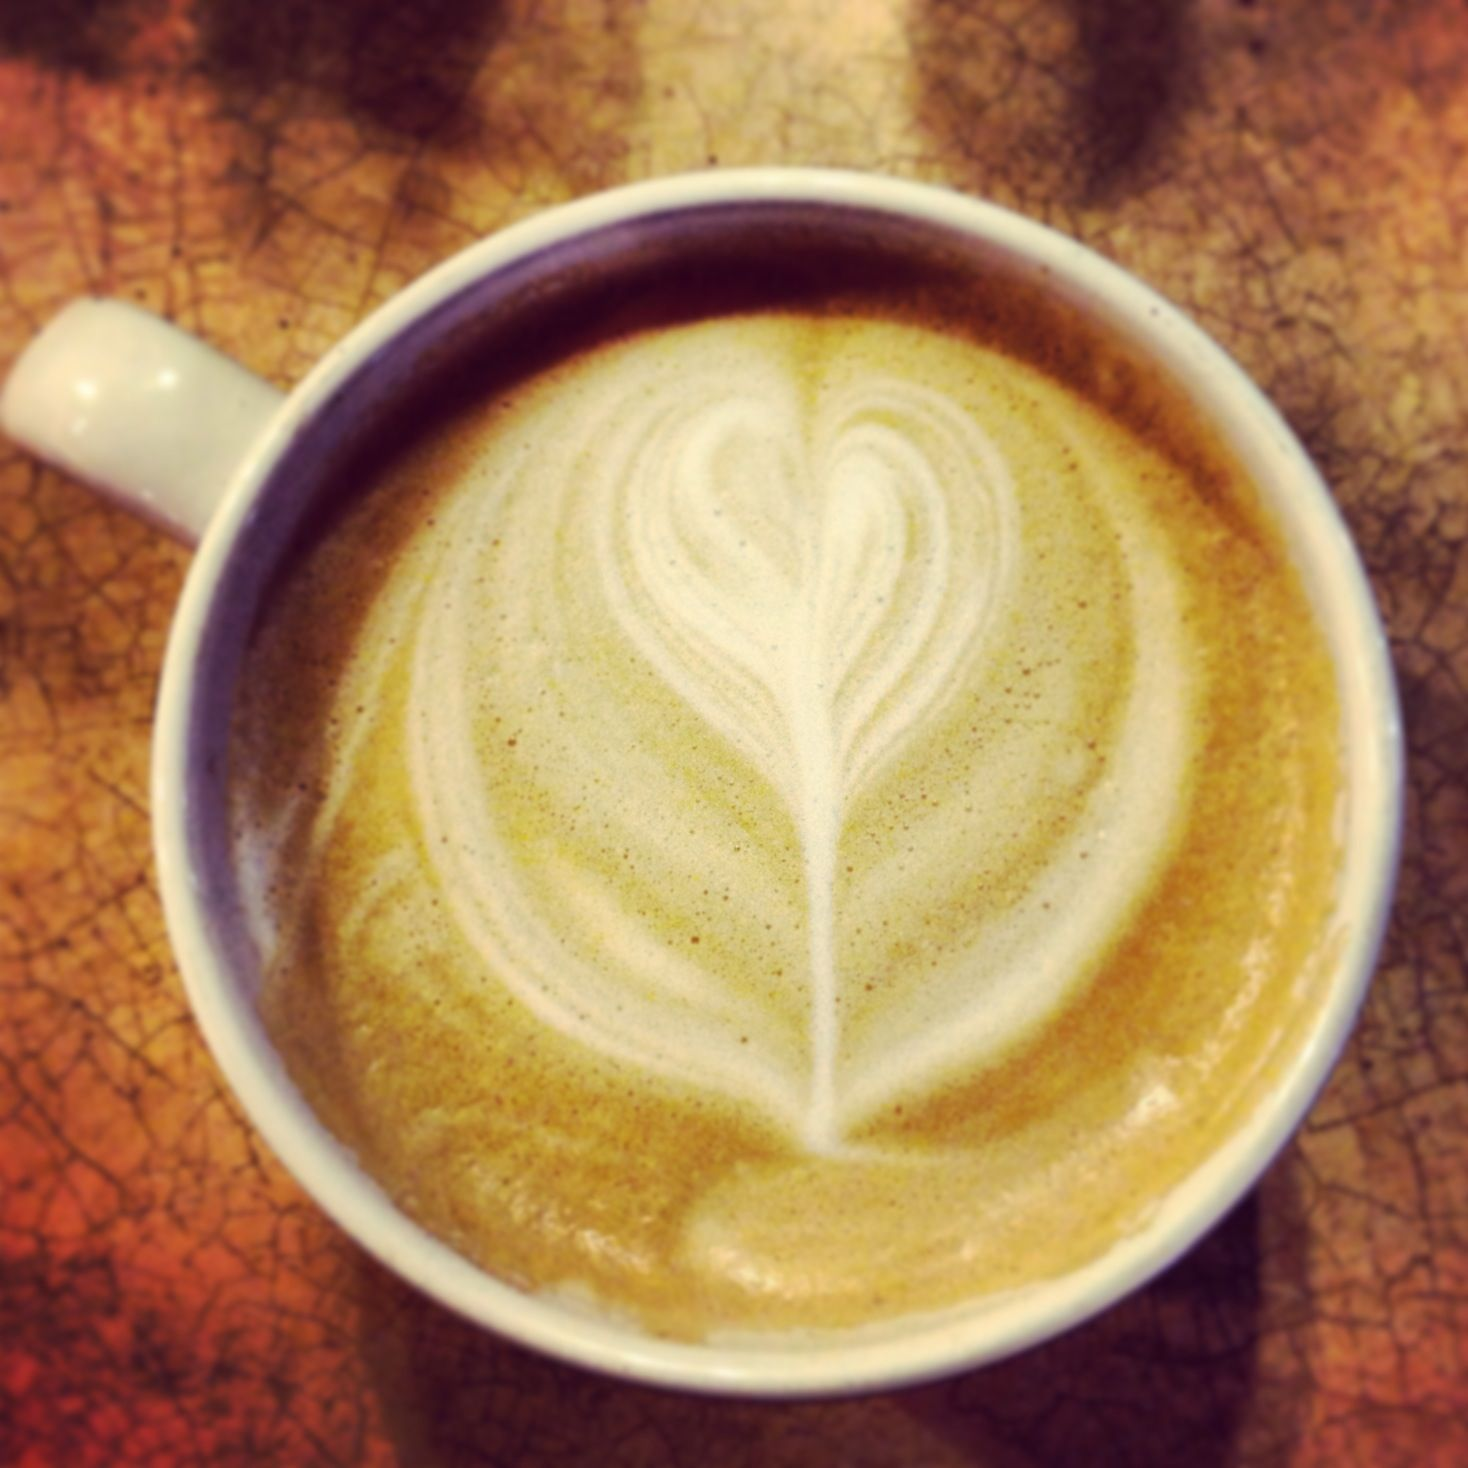 The goodness - Strange Brew Latte made with love.